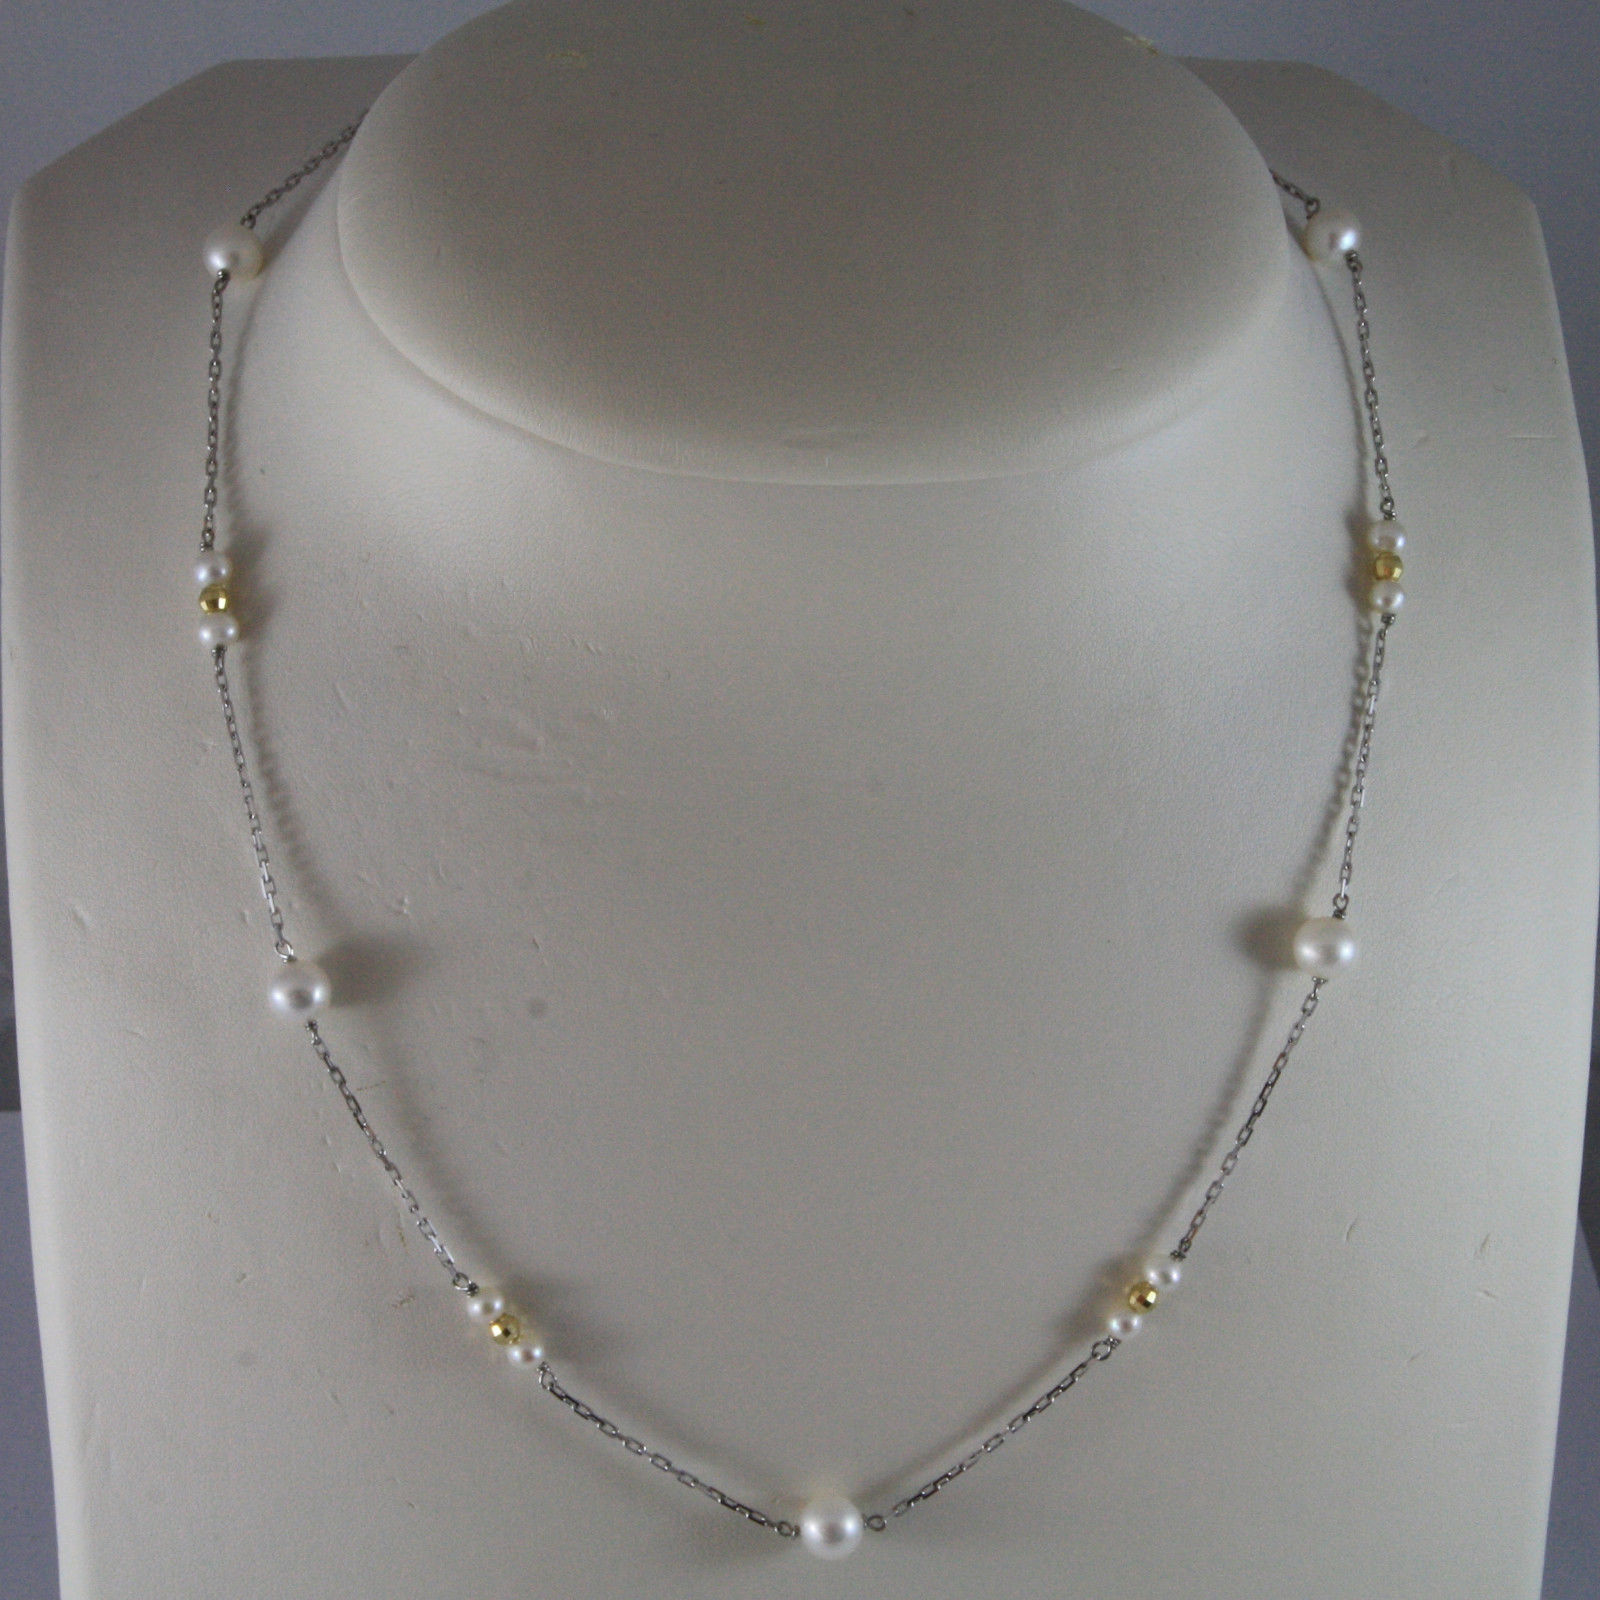 SOLID 18K WHITE GOLD NECKLACE WITH FRESHWATER WHITE PEARL AND YELLOW GOLD BALLS